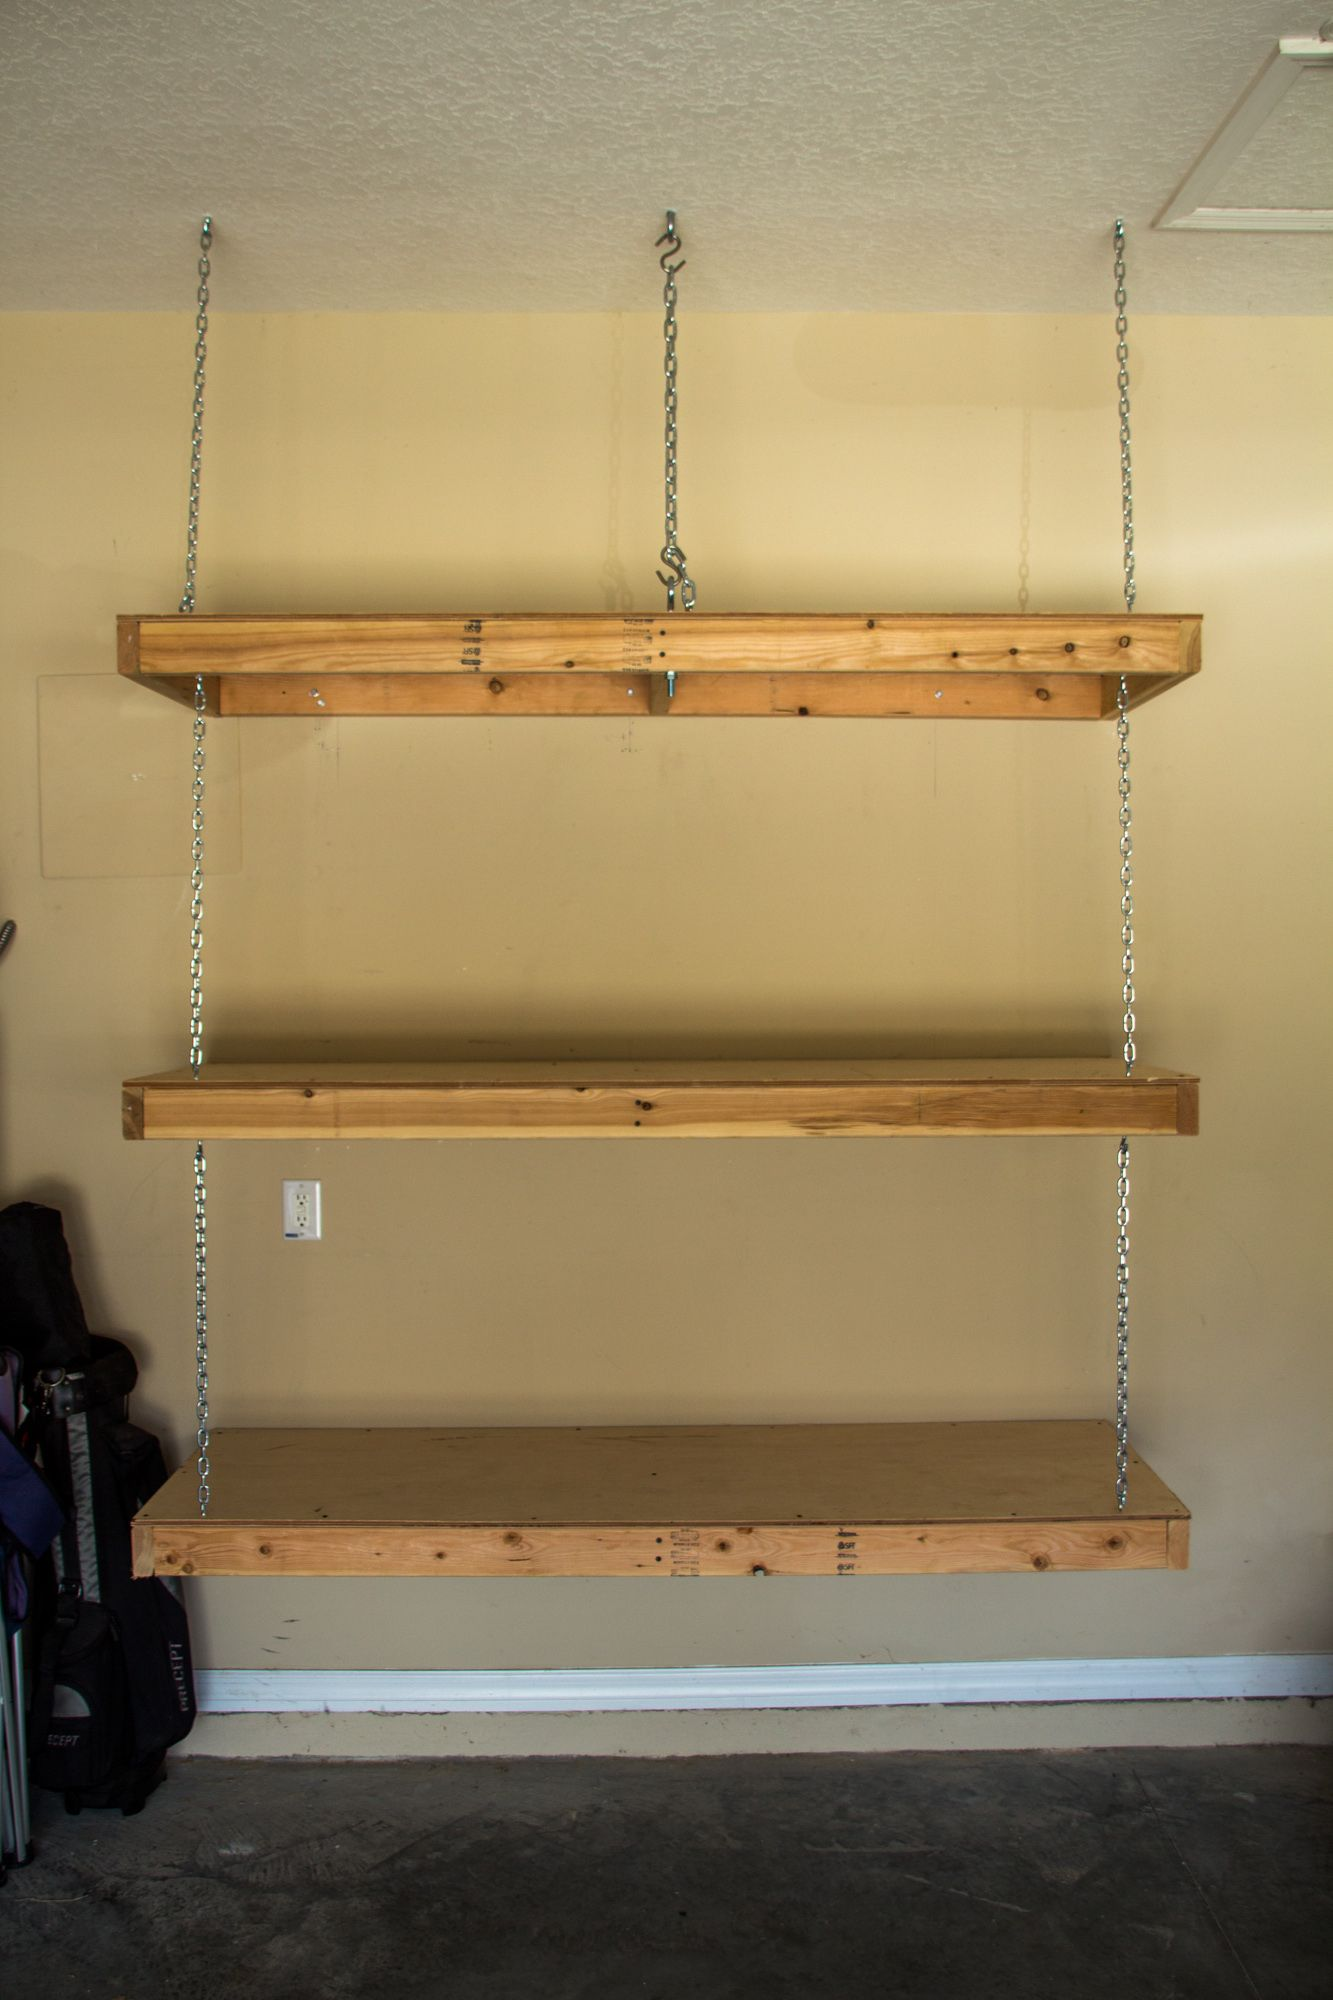 wall garage how storage for companies make organization cabinets mounted to pulley shelves ceiling